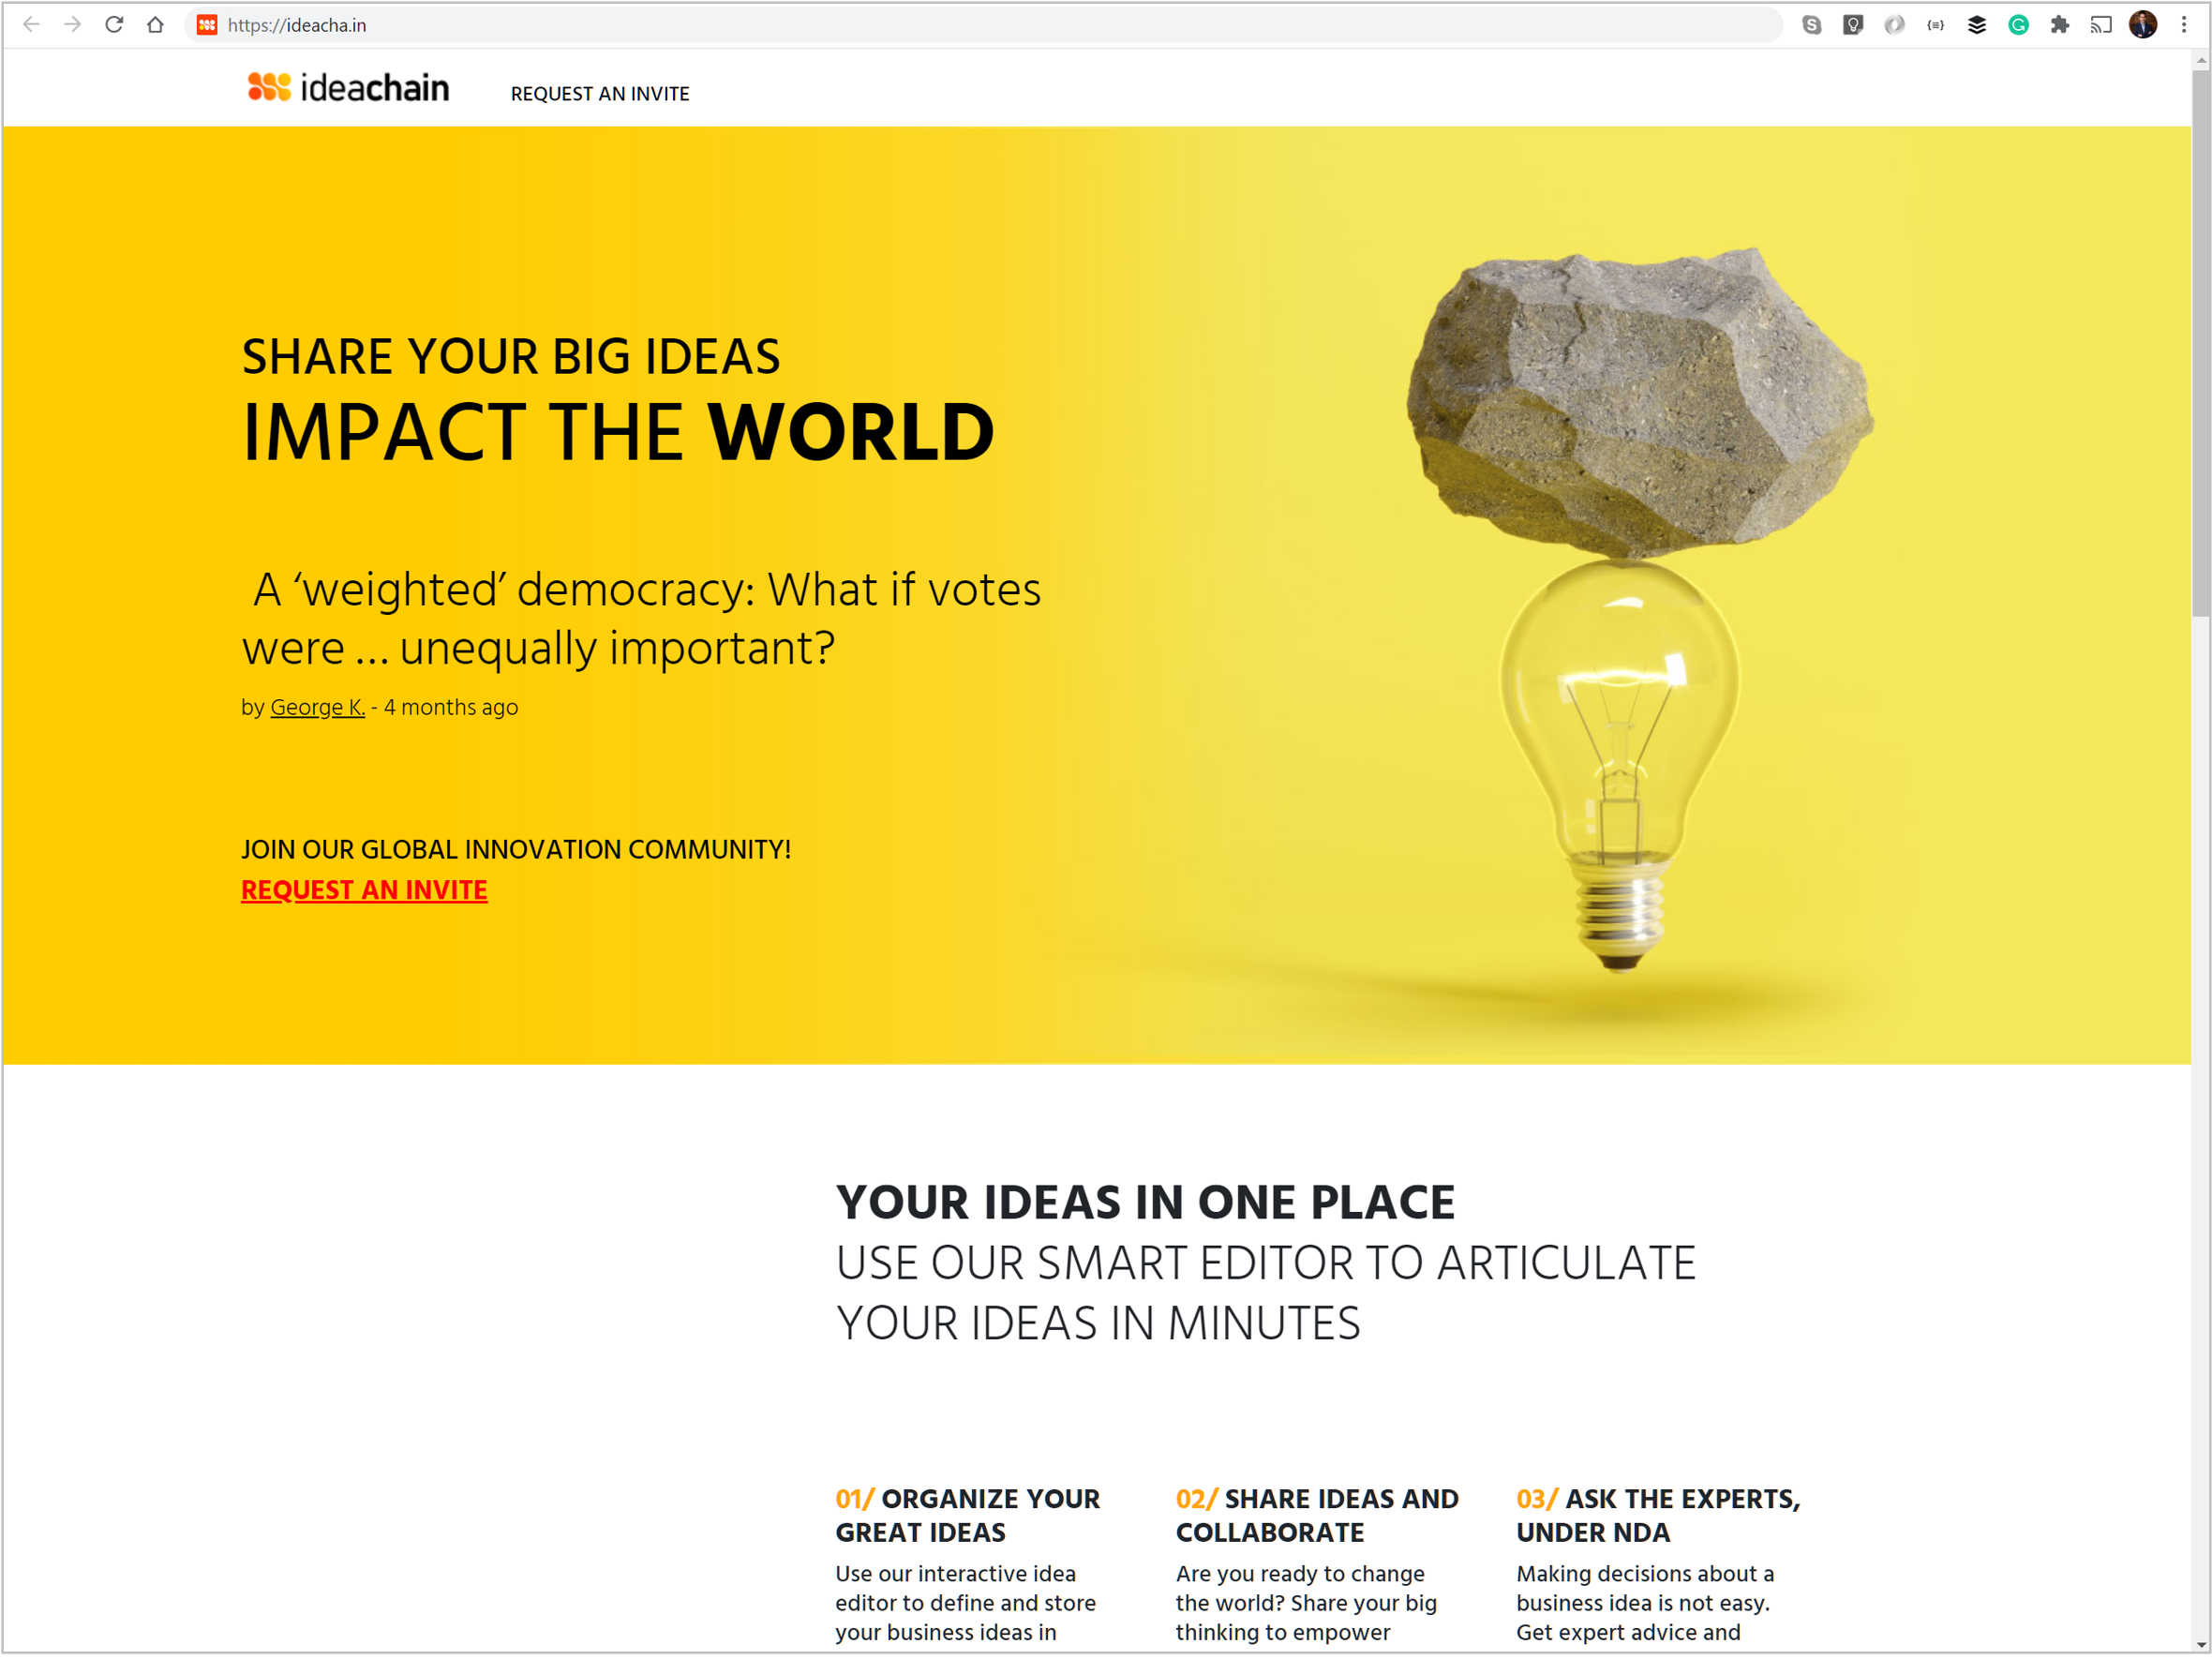 The homepage of the ideachain website—an open innovation concept